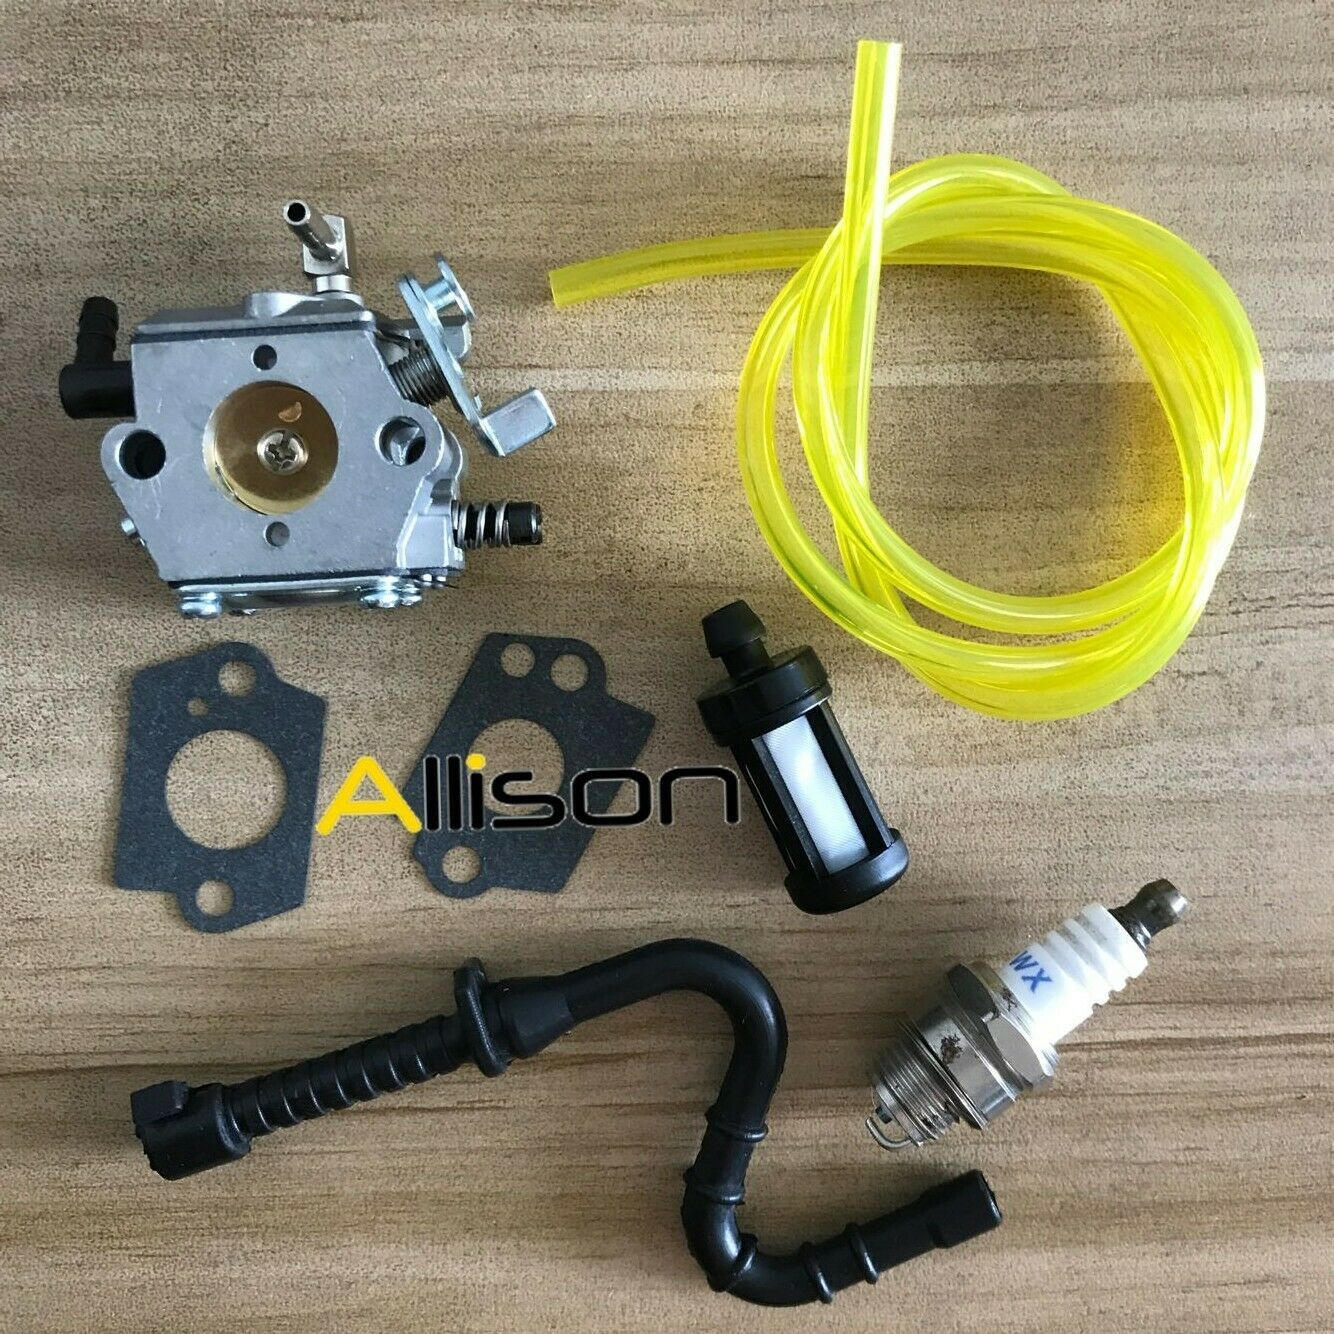 Primary image for Carburetor & Fuel Line F Stihl 028 028AV 028 SUPER Walbro WT-16B Tillotson HU-40